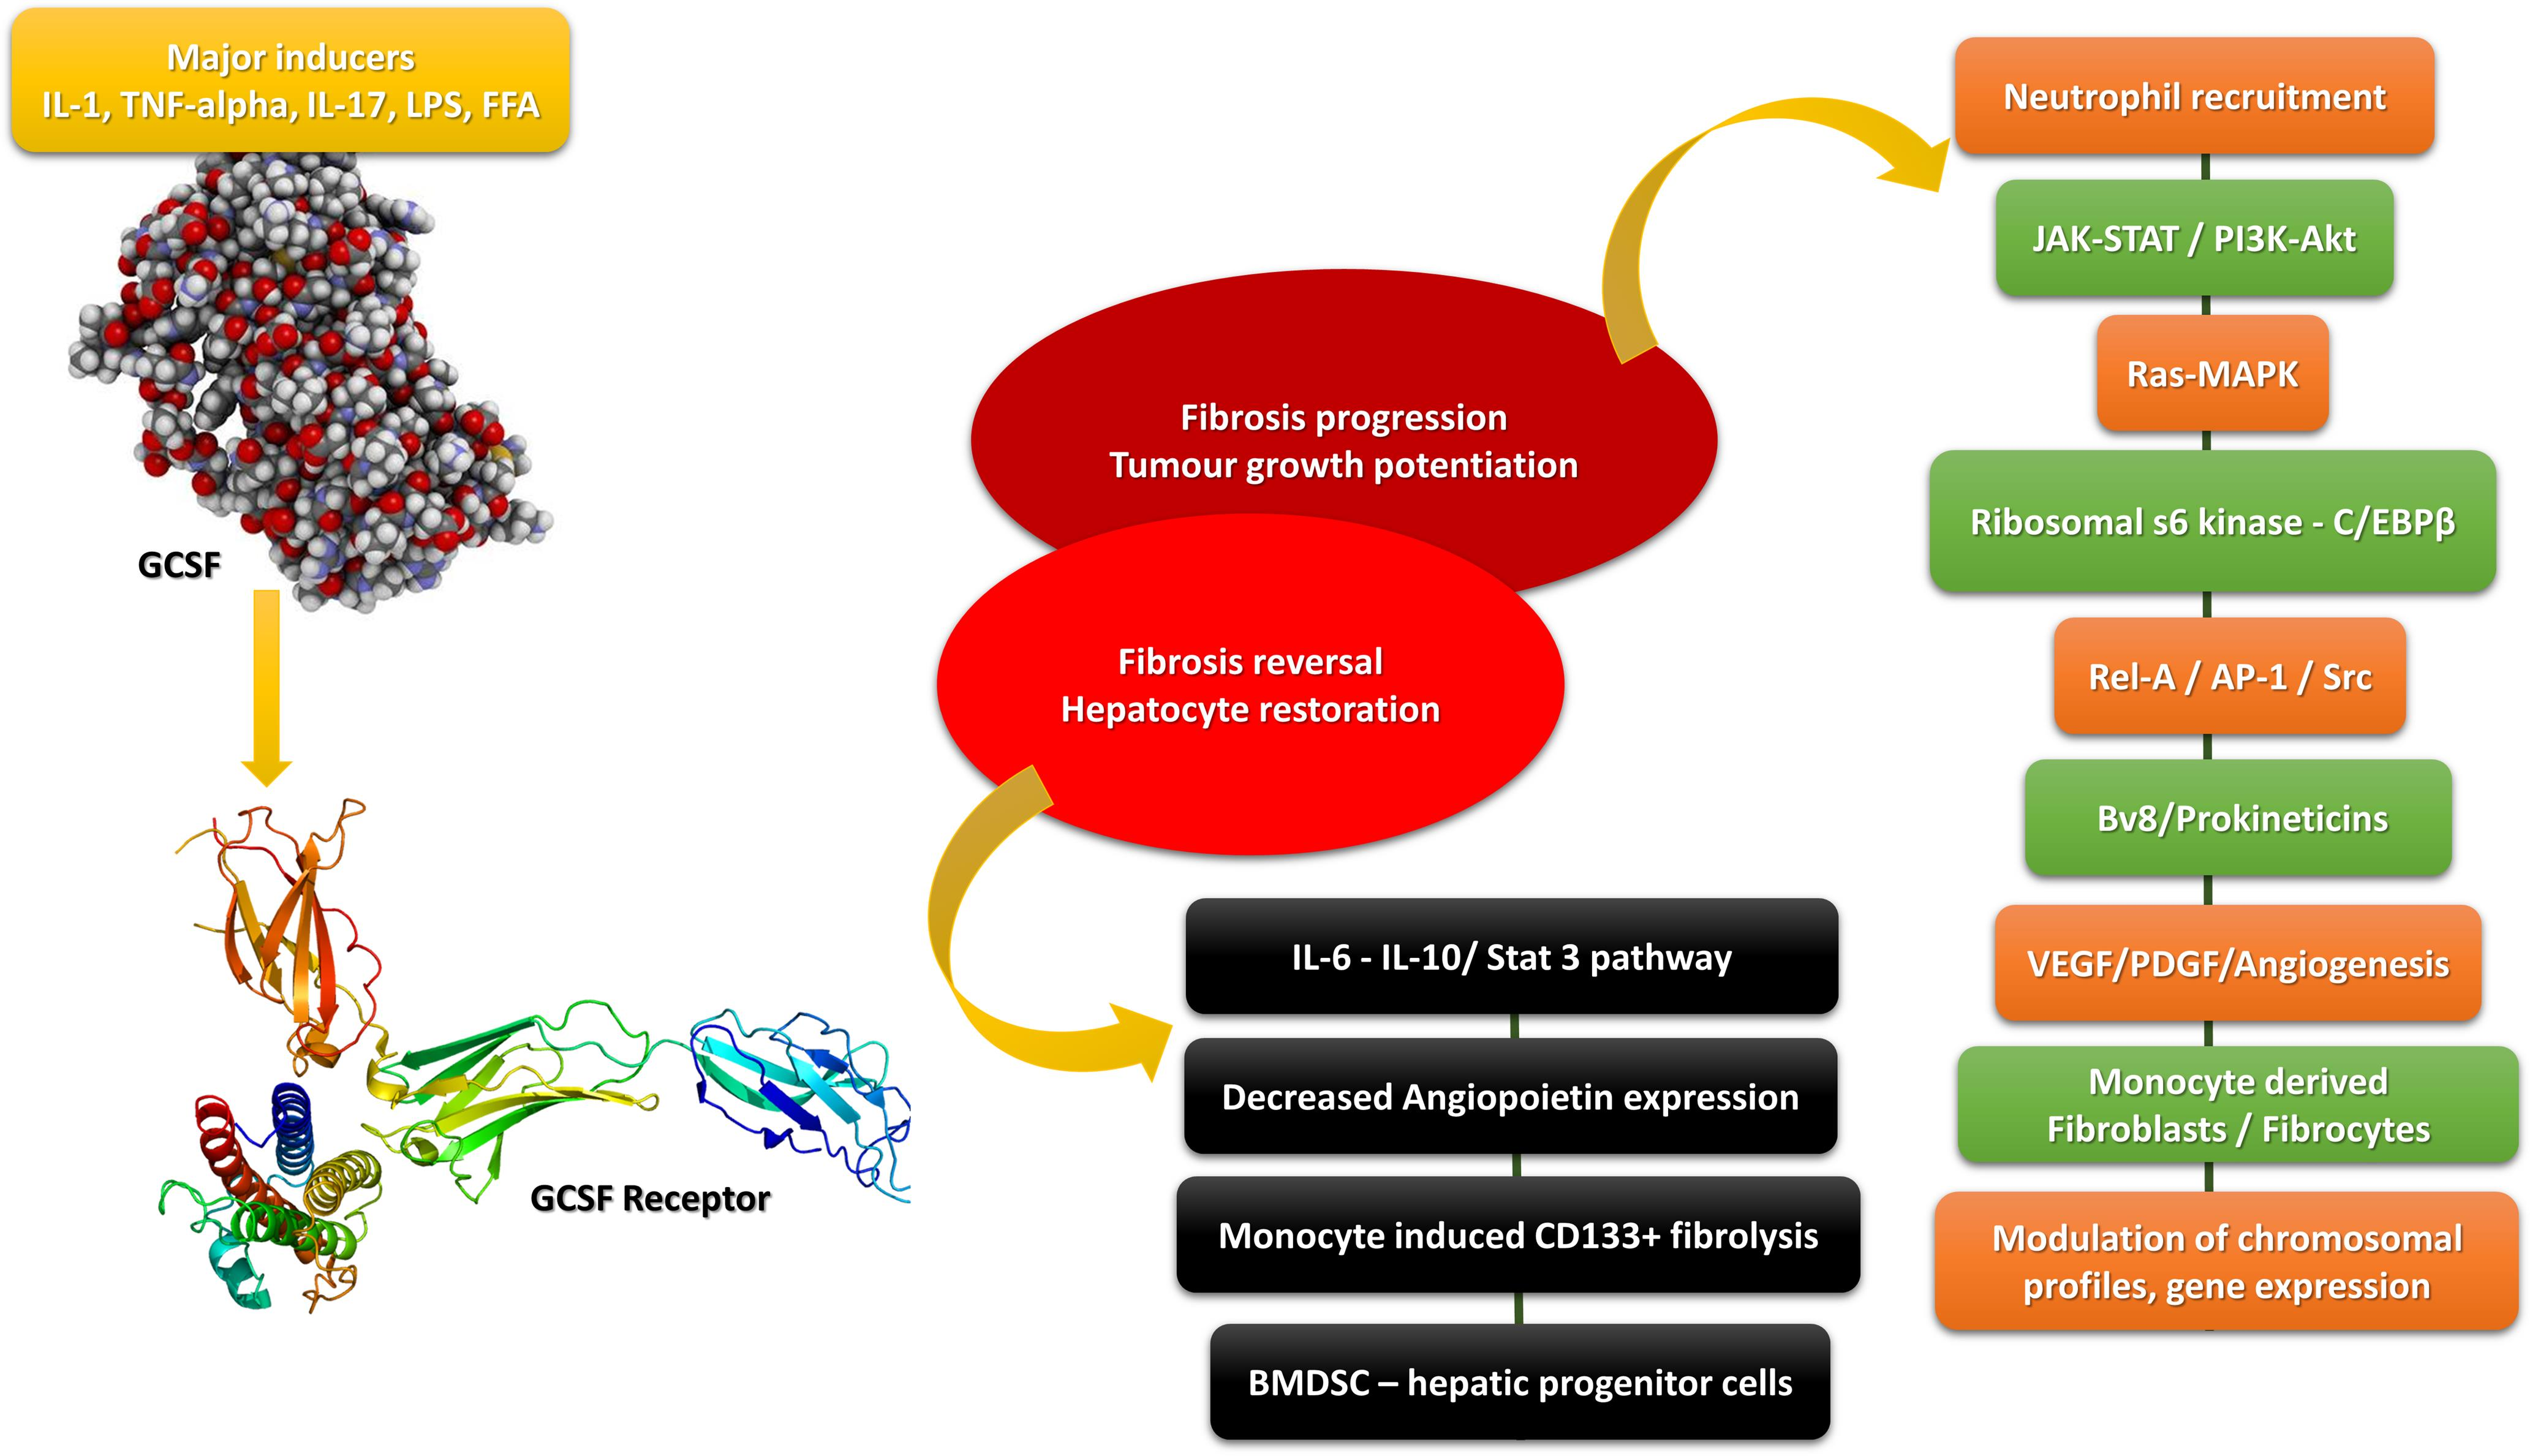 GCSF-activated molecular pathways associated with fibrosis regression and progression.